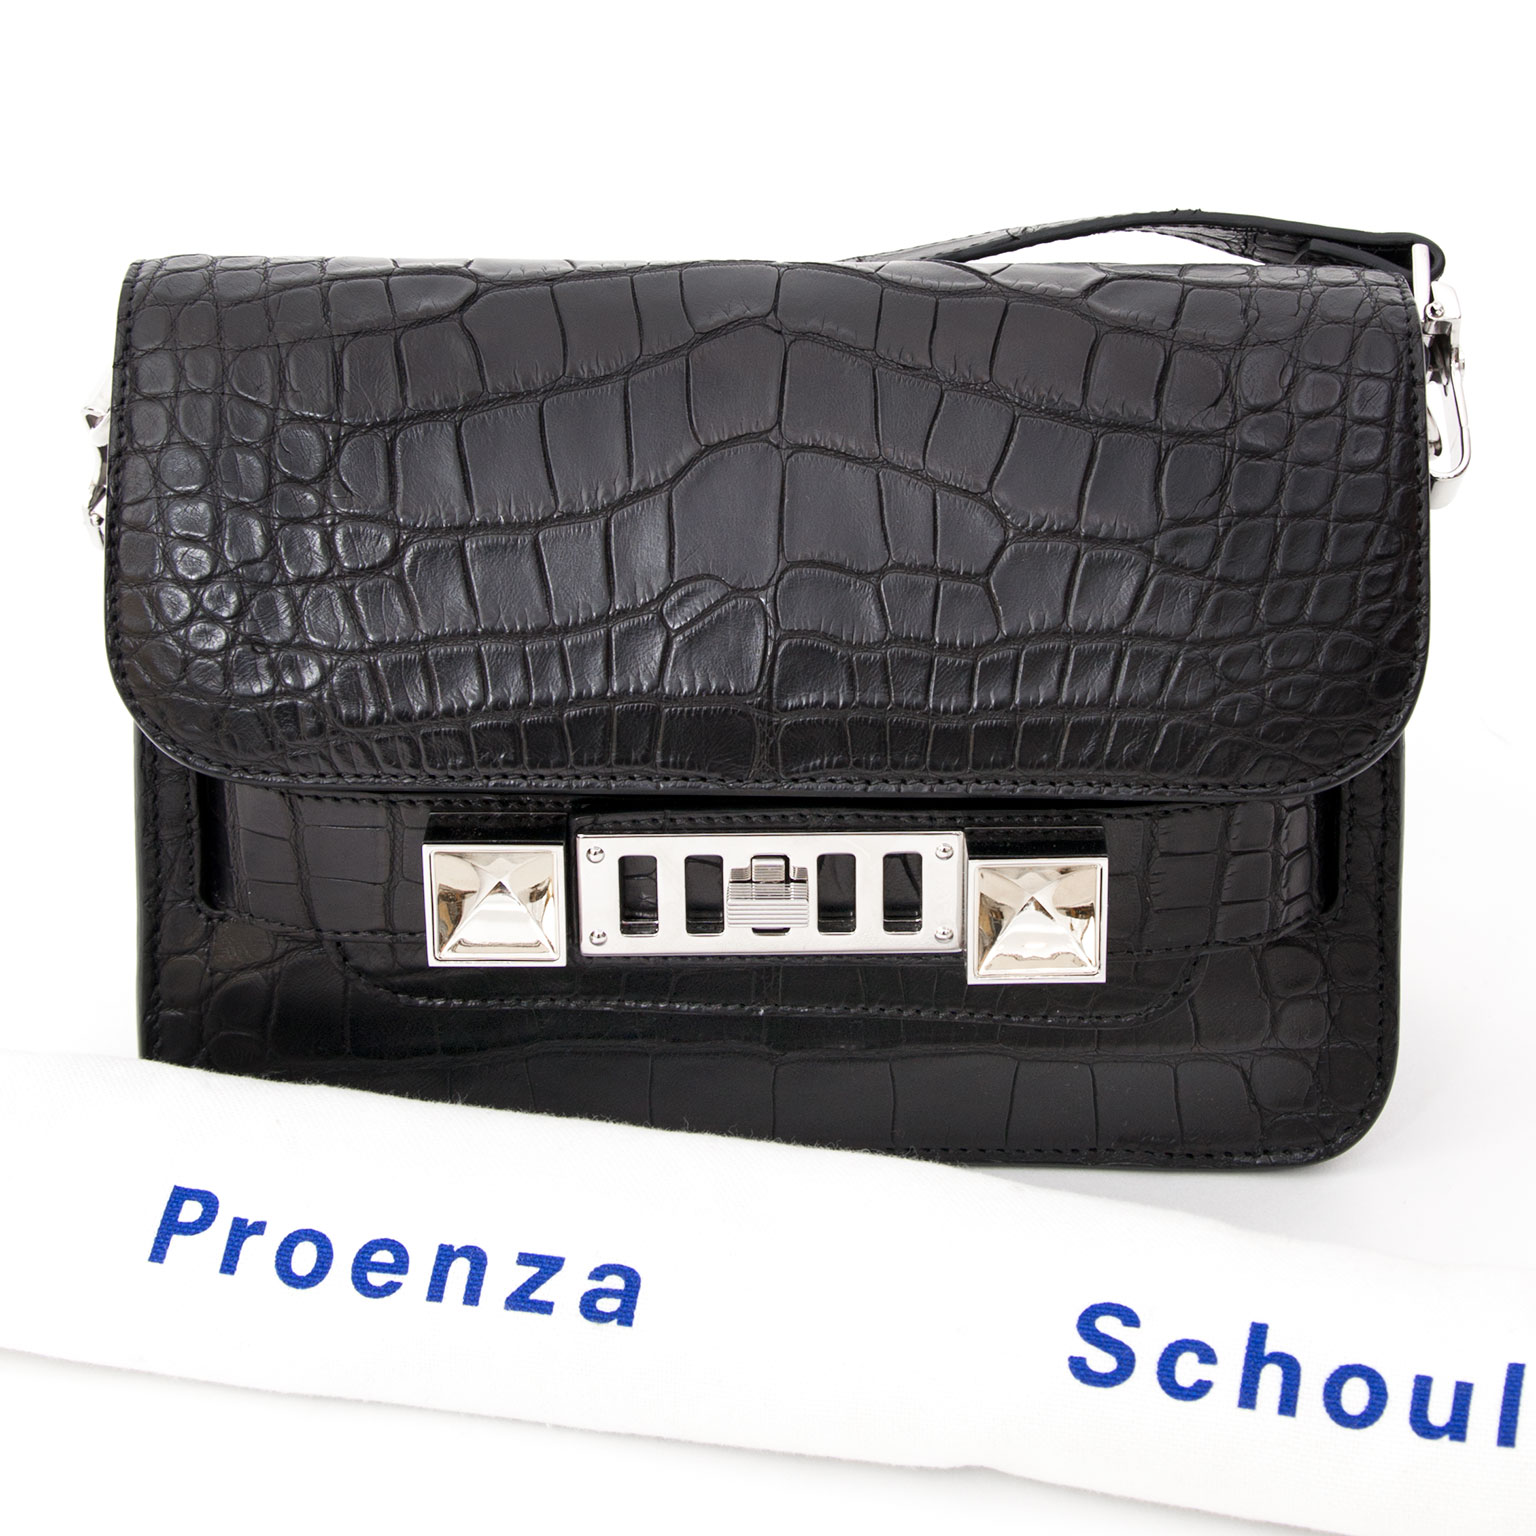 Buy safe and 100% authentic Proenza Schouler shoulderbags on Labellov.com